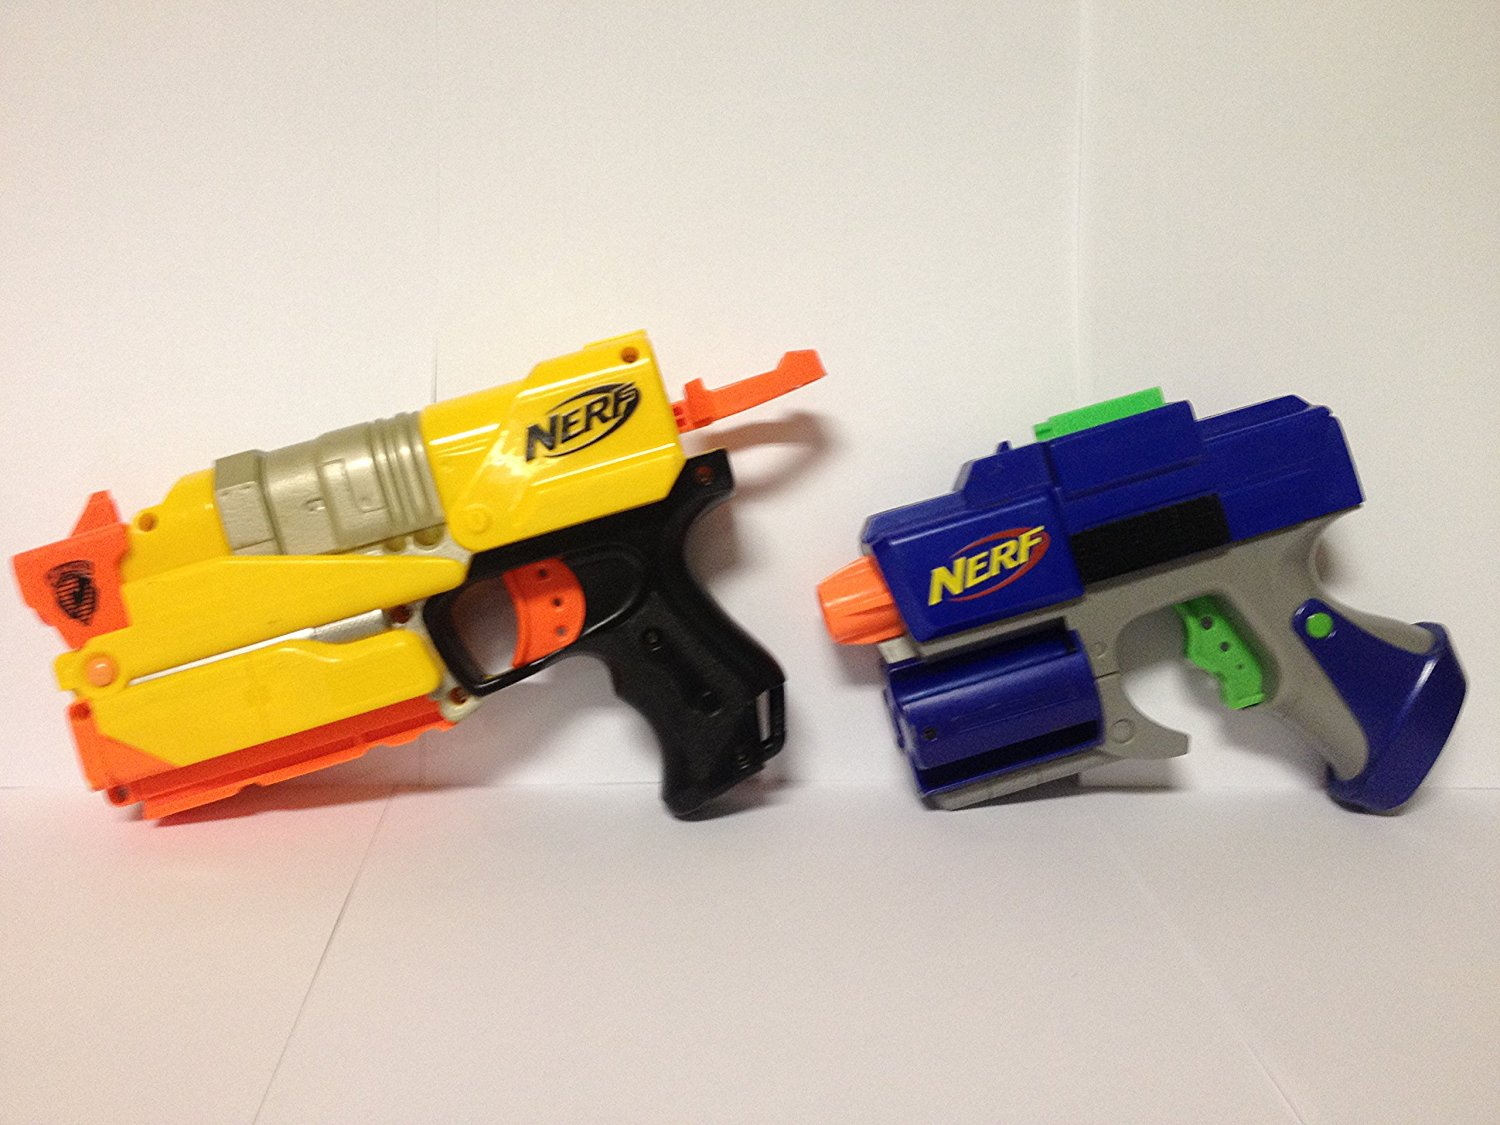 Miscellaneous Nerf Guns (Includes 10 guns)